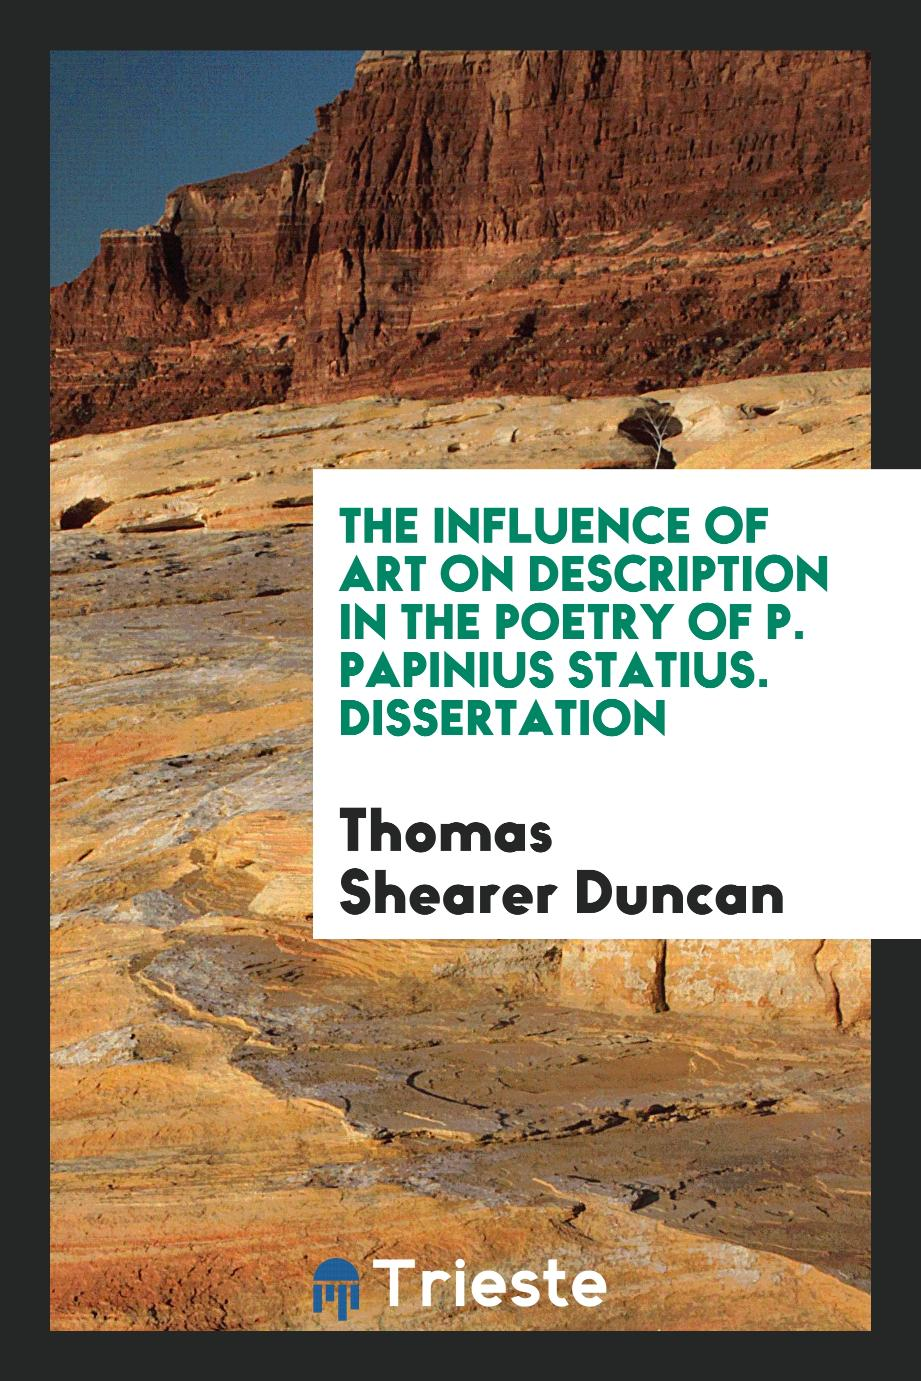 The Influence of Art on Description in the Poetry of P. Papinius Statius. Dissertation